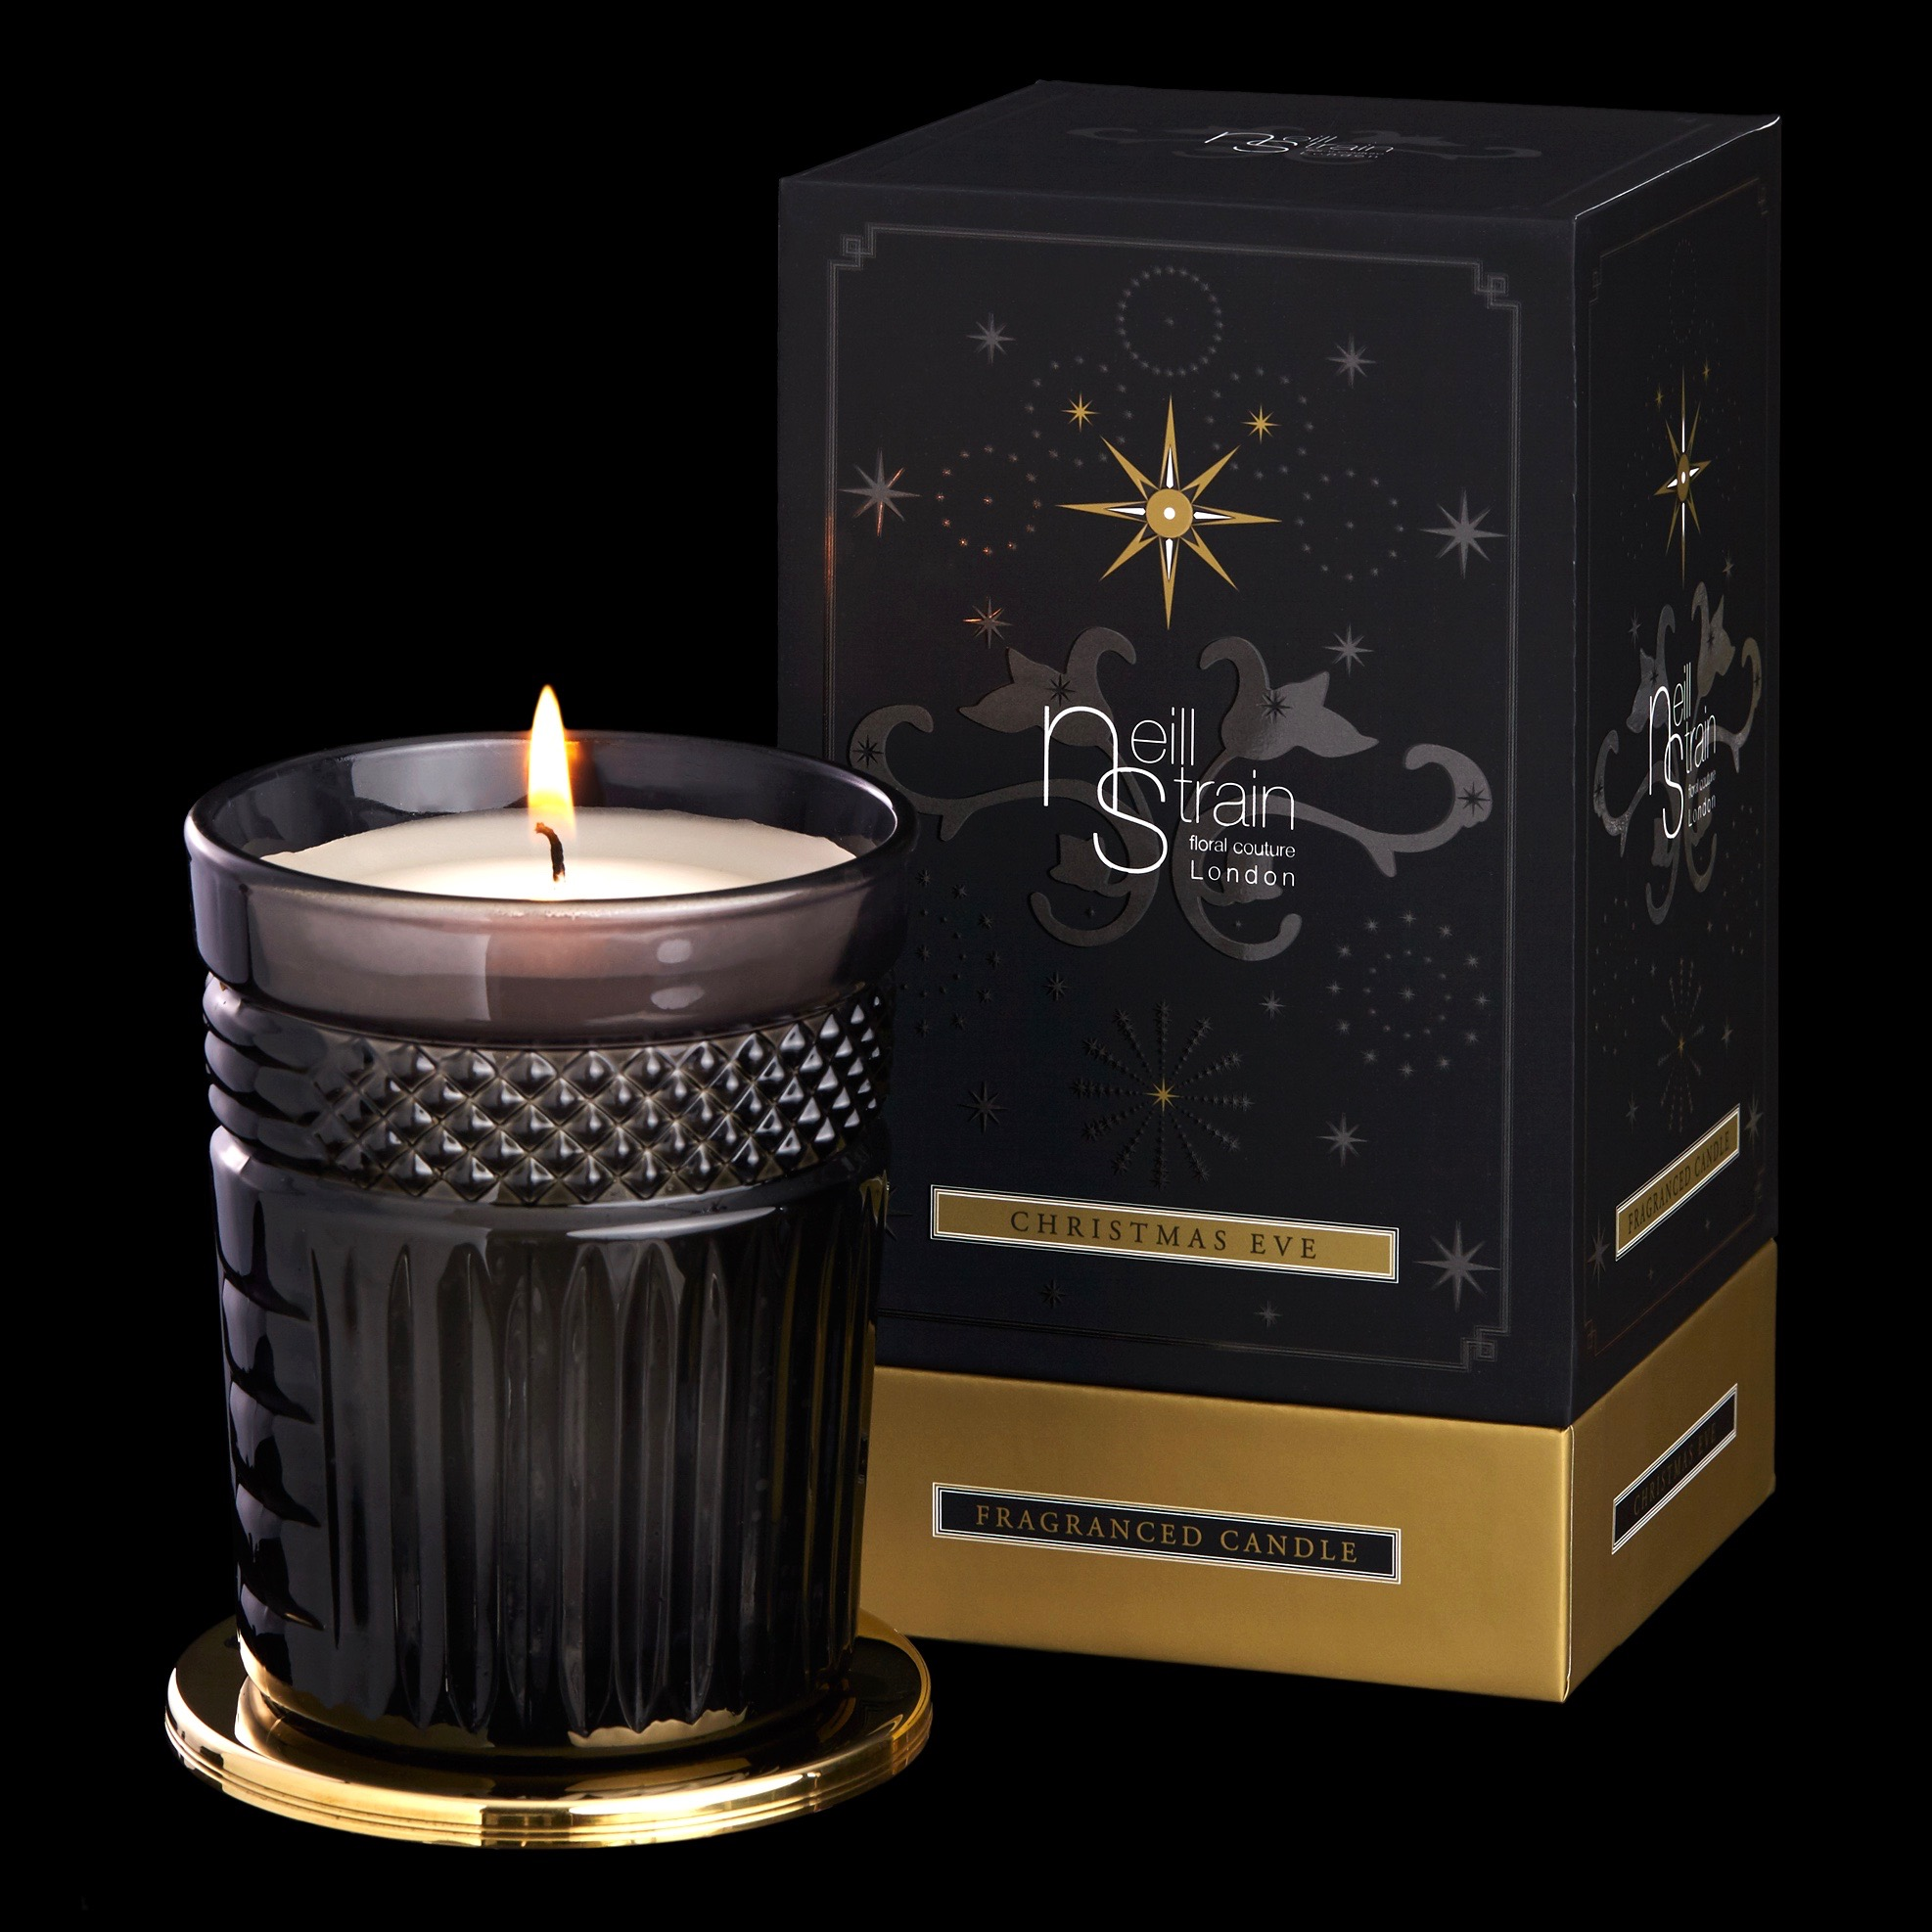 Neill Strain Floral Couture Candle Christmas Eve